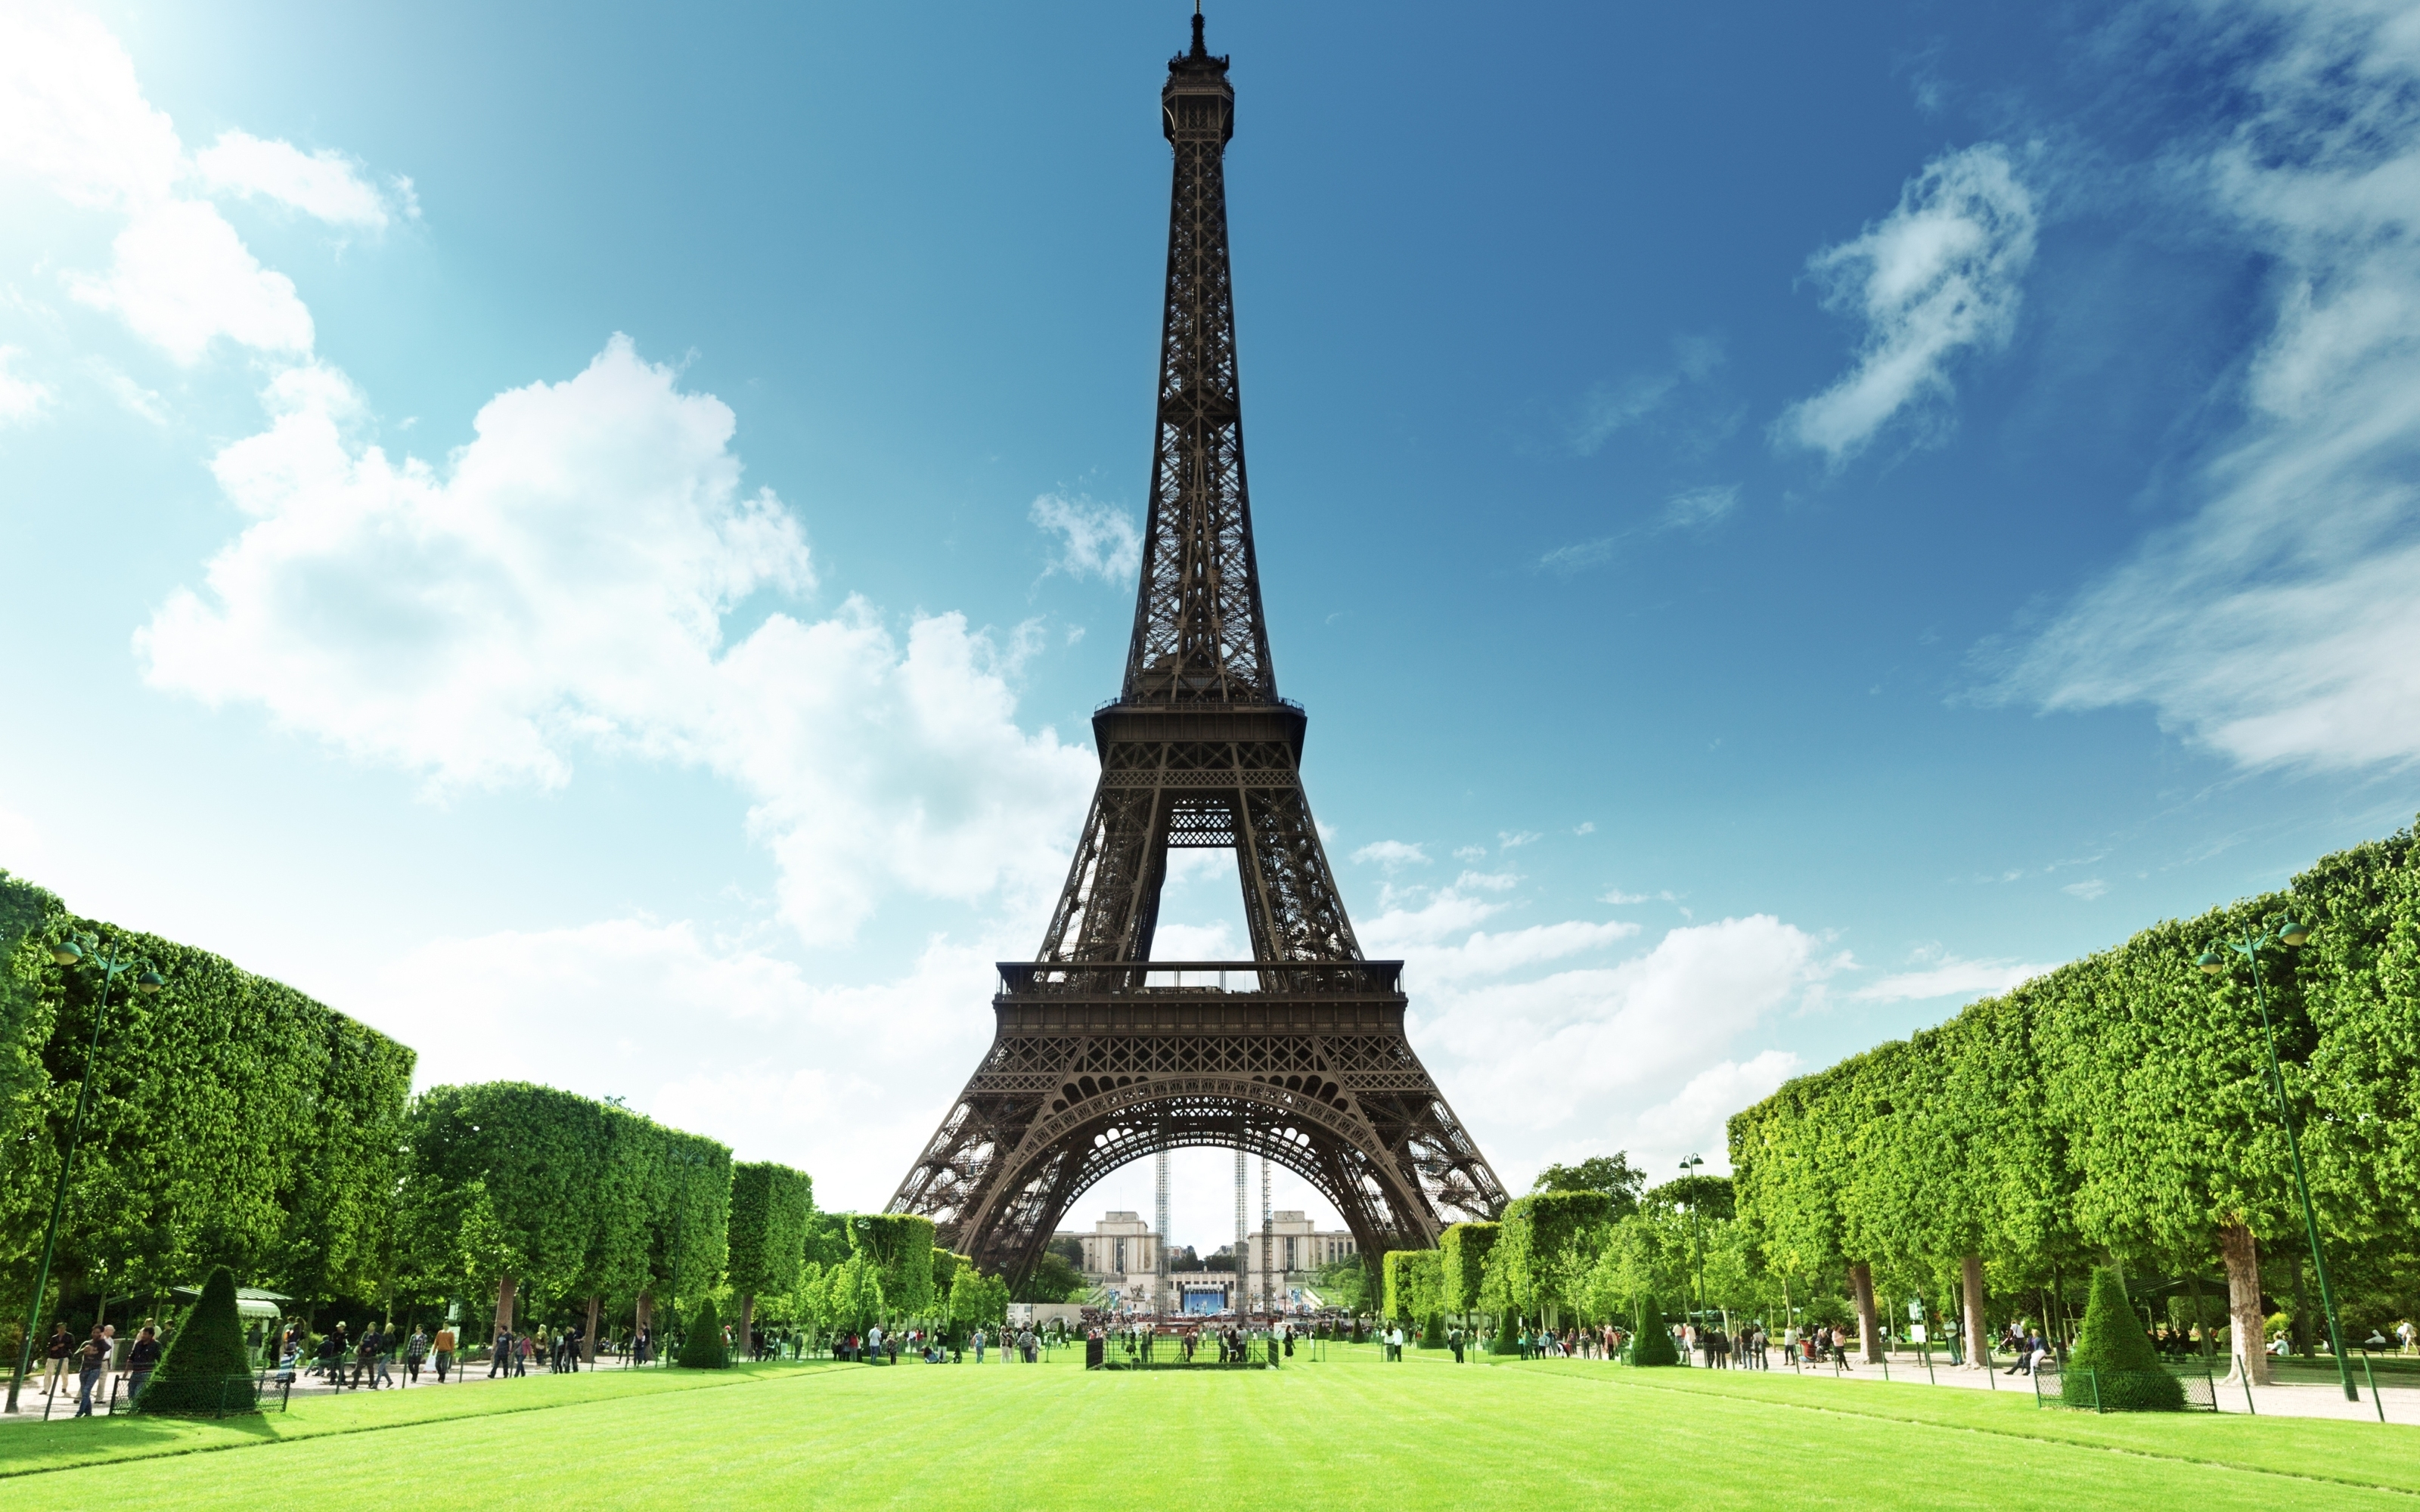 255 Eiffel Tower Hd Wallpapers Background Images Wallpaper Abyss